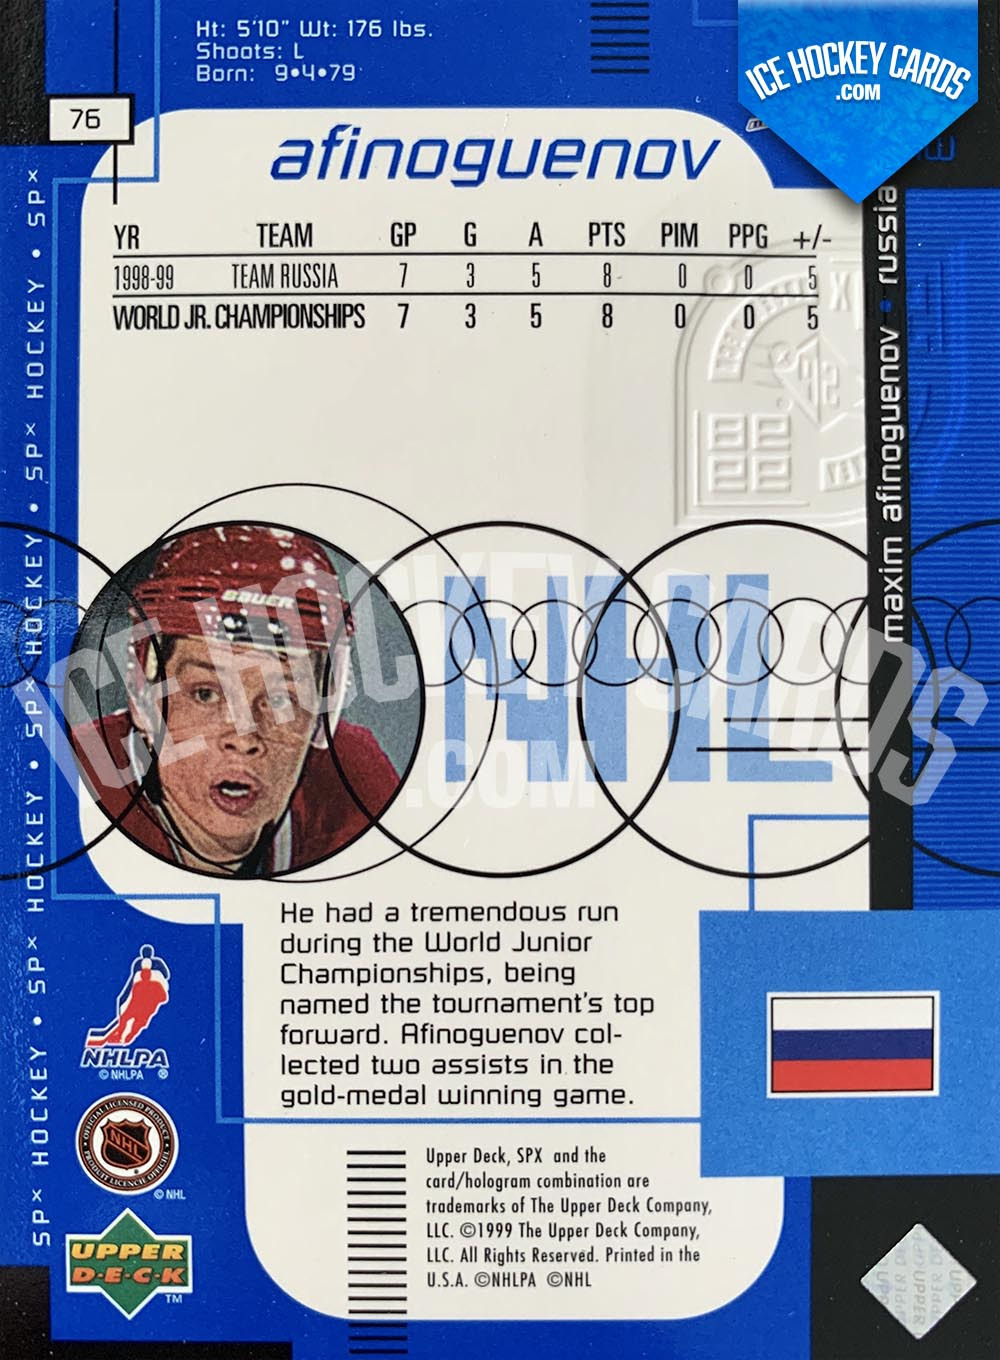 Upper Deck - SPx 1999-20 - Maxim Afinoguenov Rookie Card back